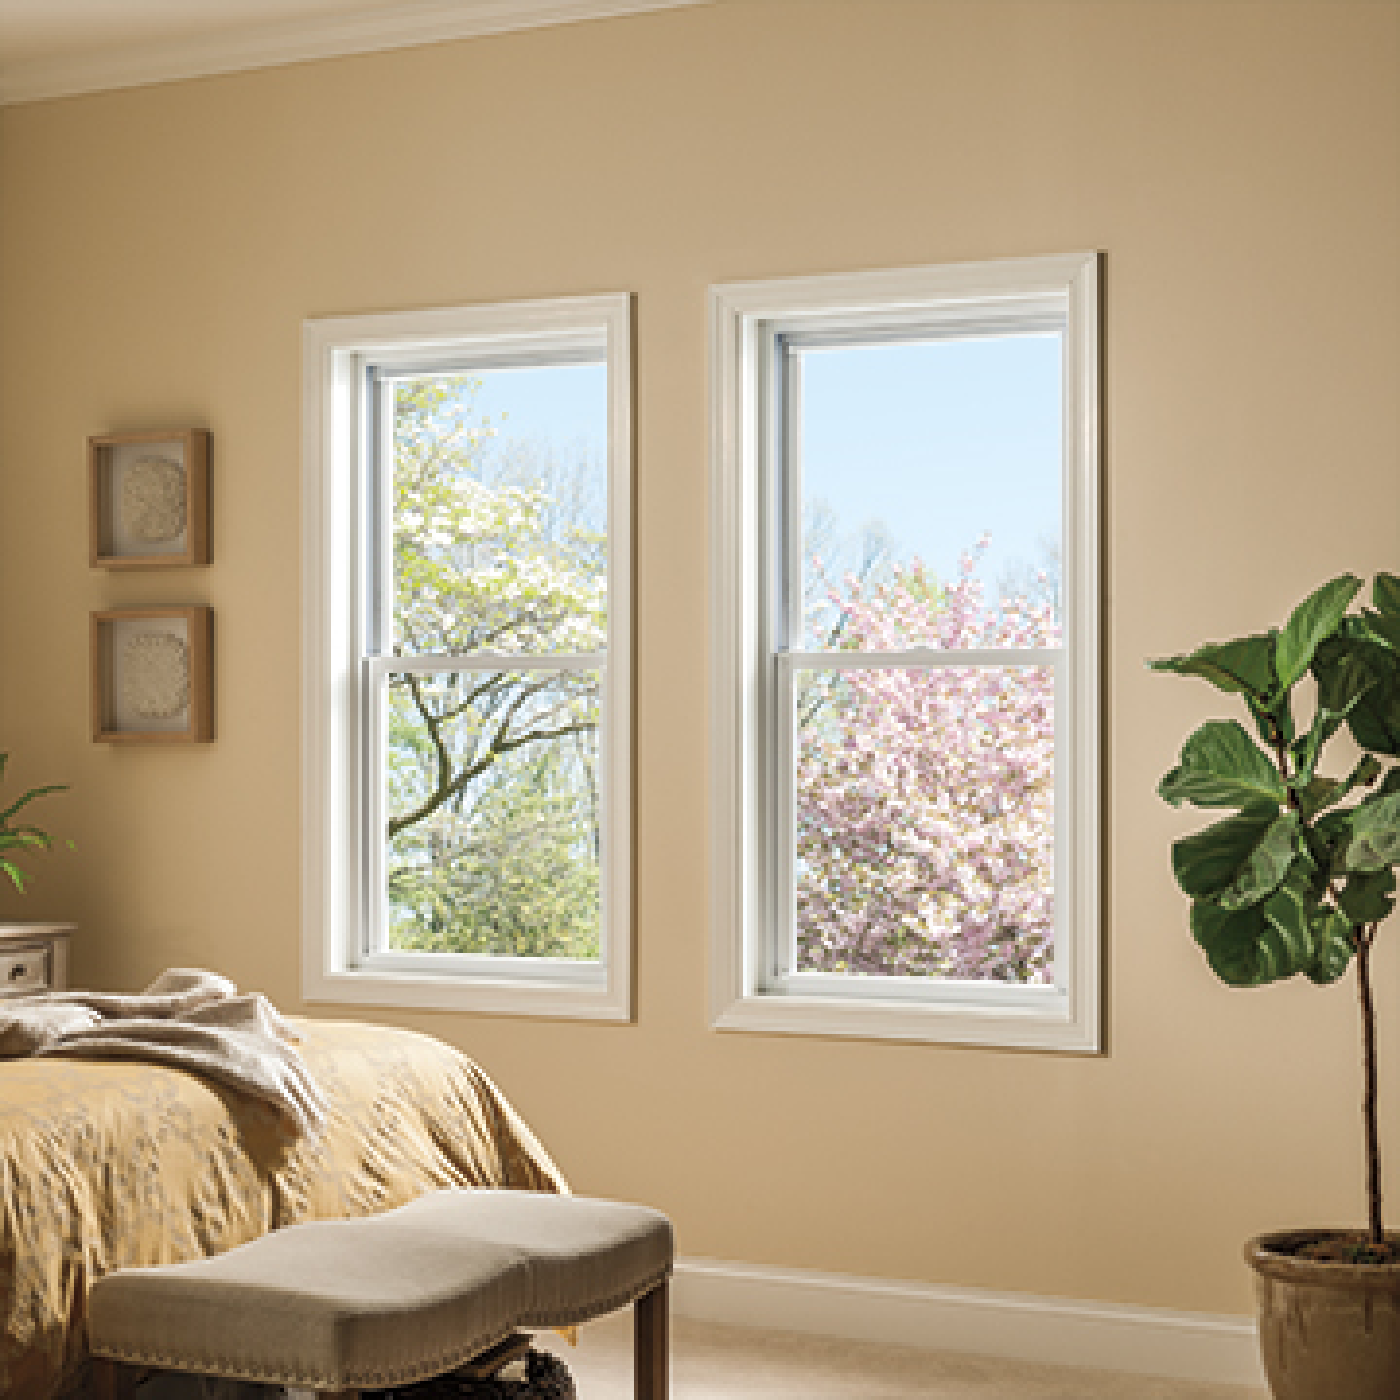 Install New Construction Windows Window Construction Home Window Replacement Windows